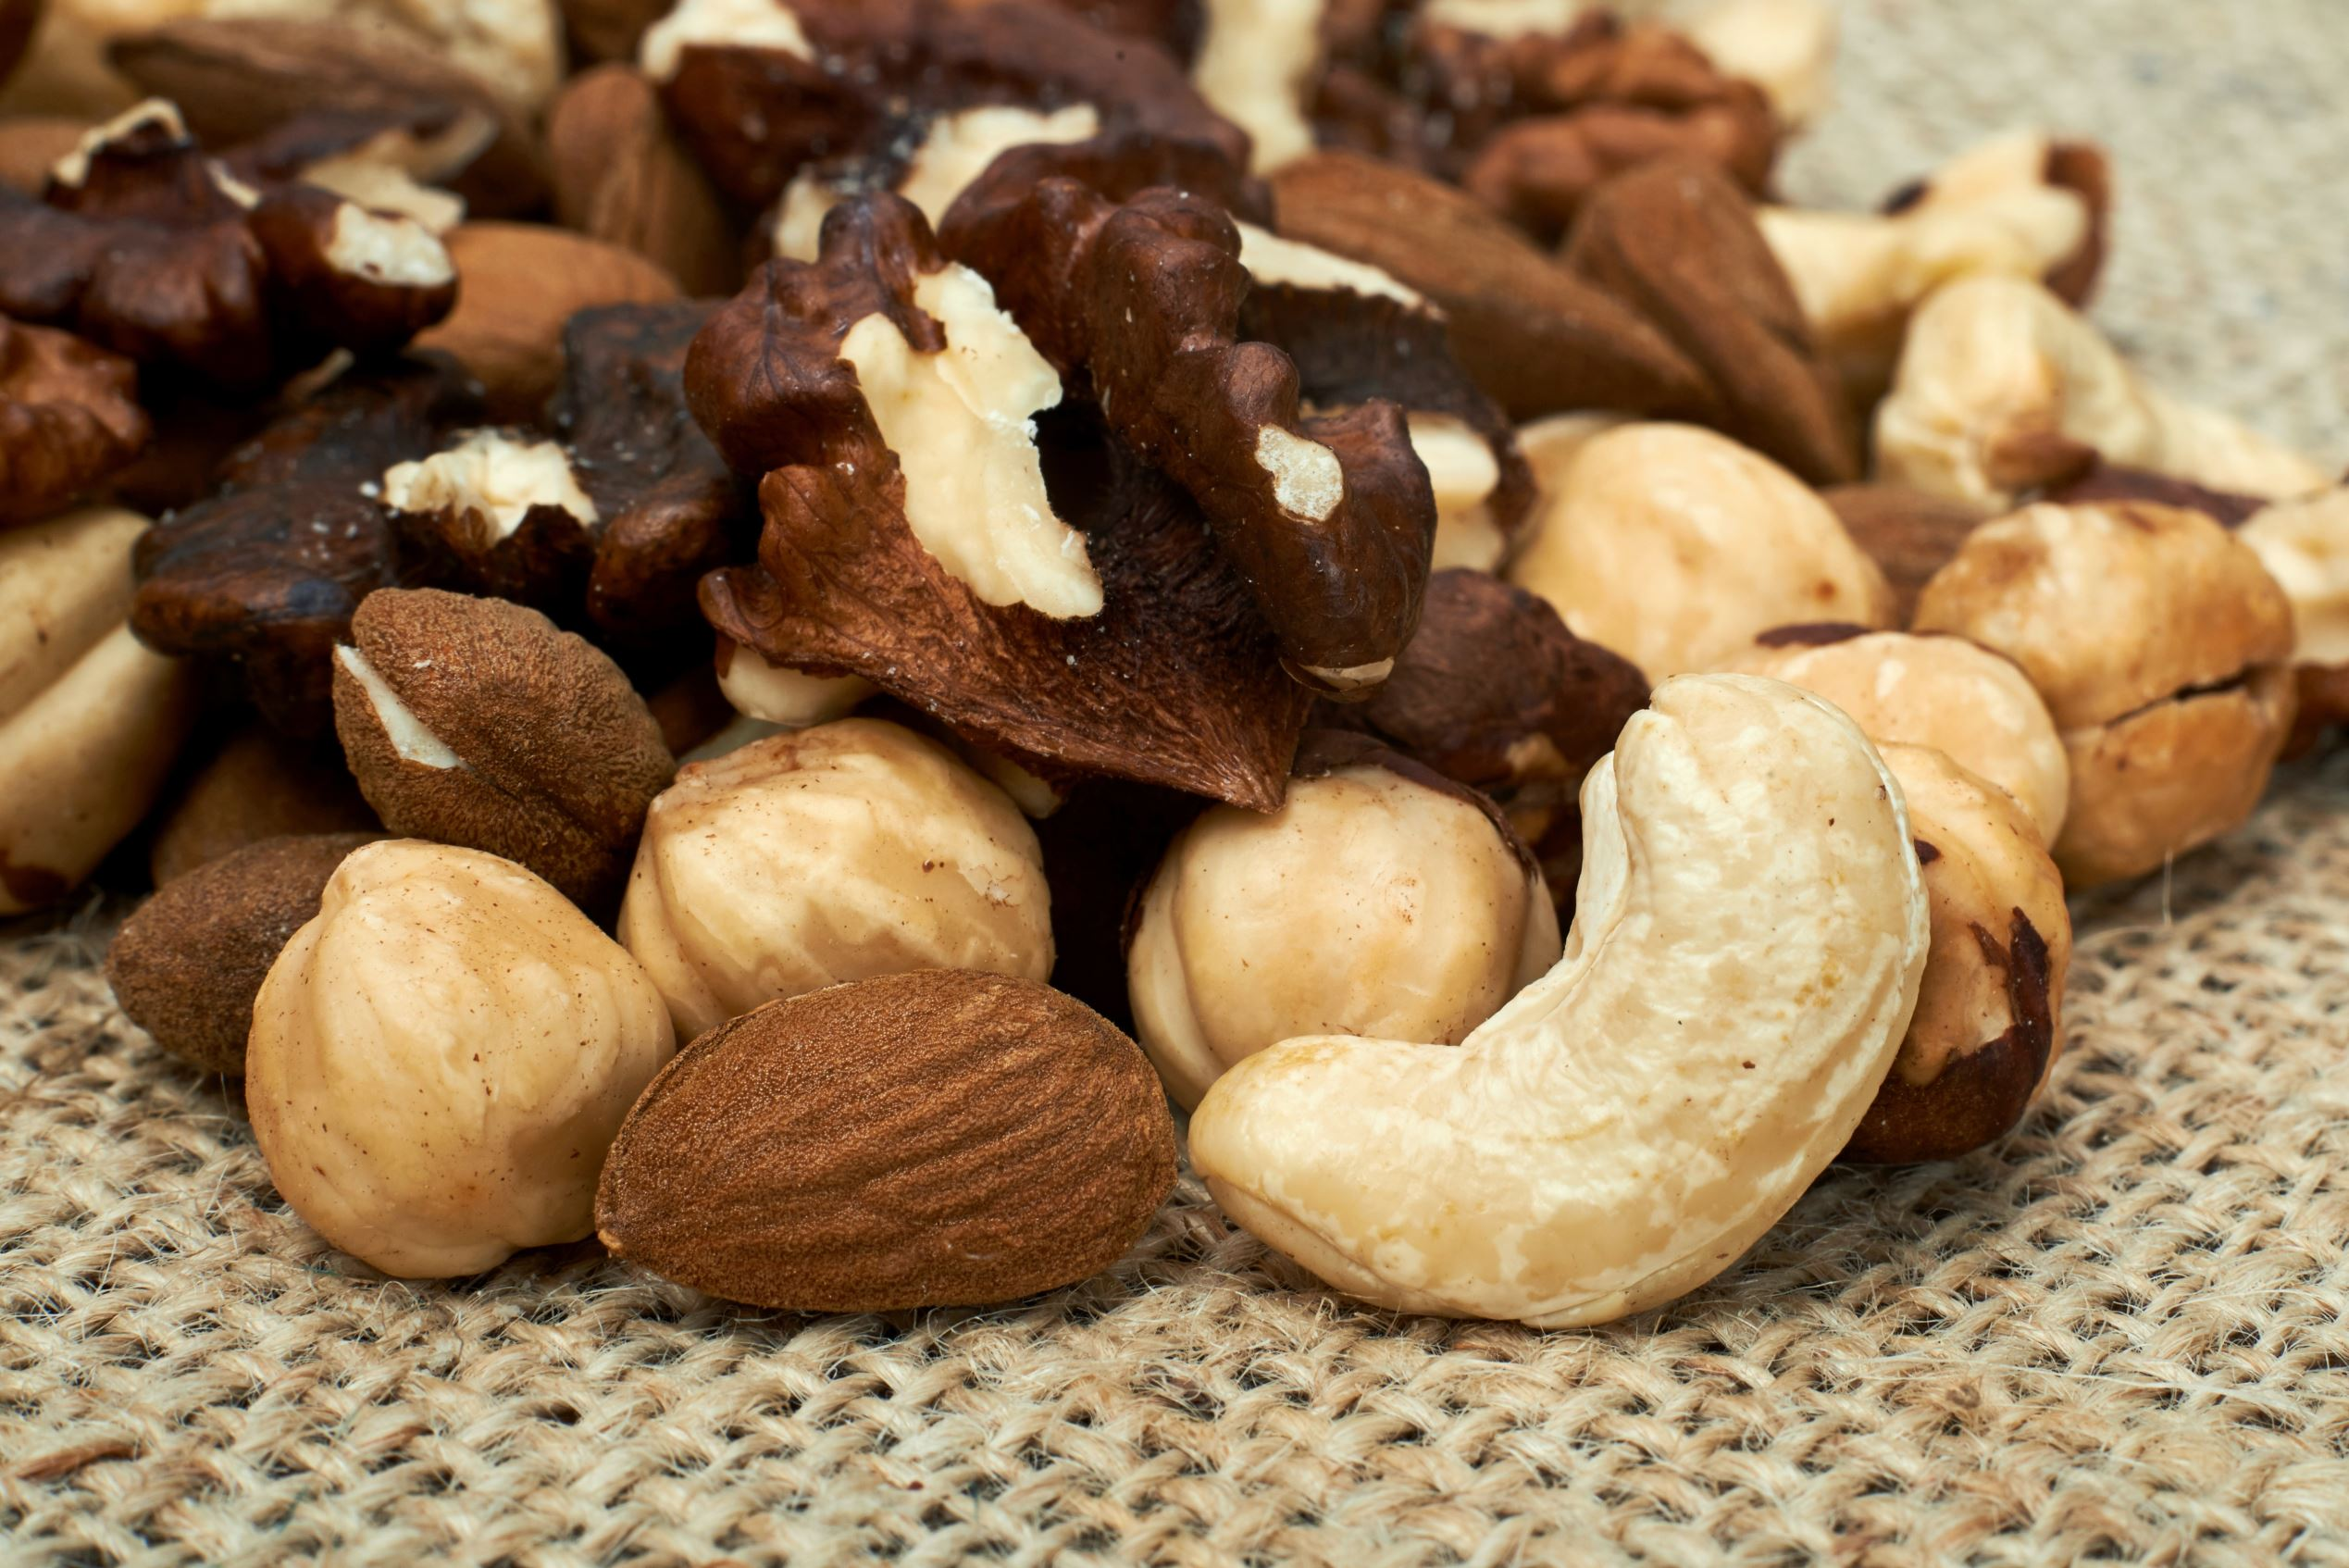 Eating a handful of nuts each day could help you live longer